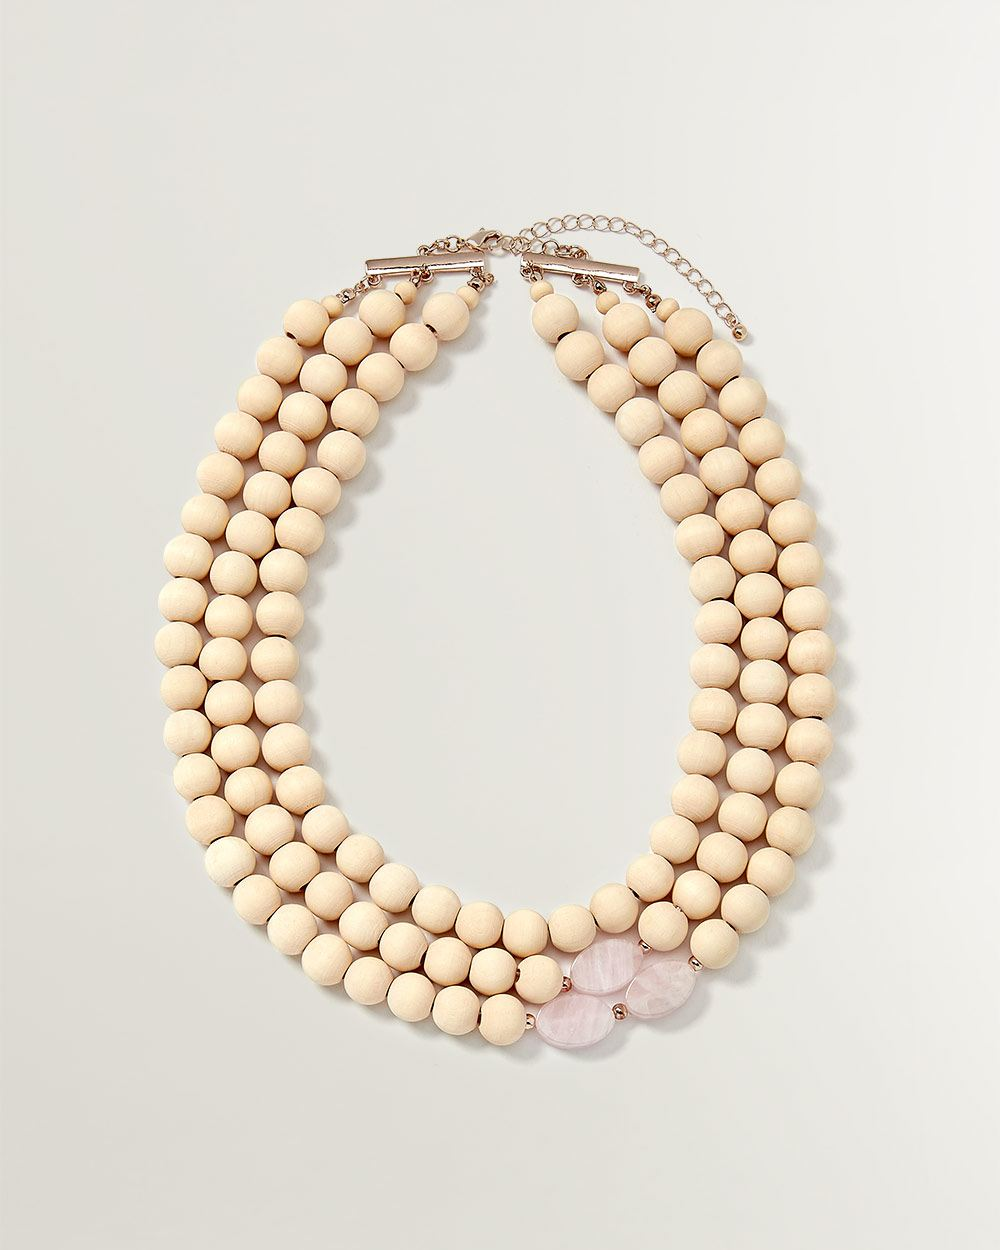 3-Layer Wooded Necklace